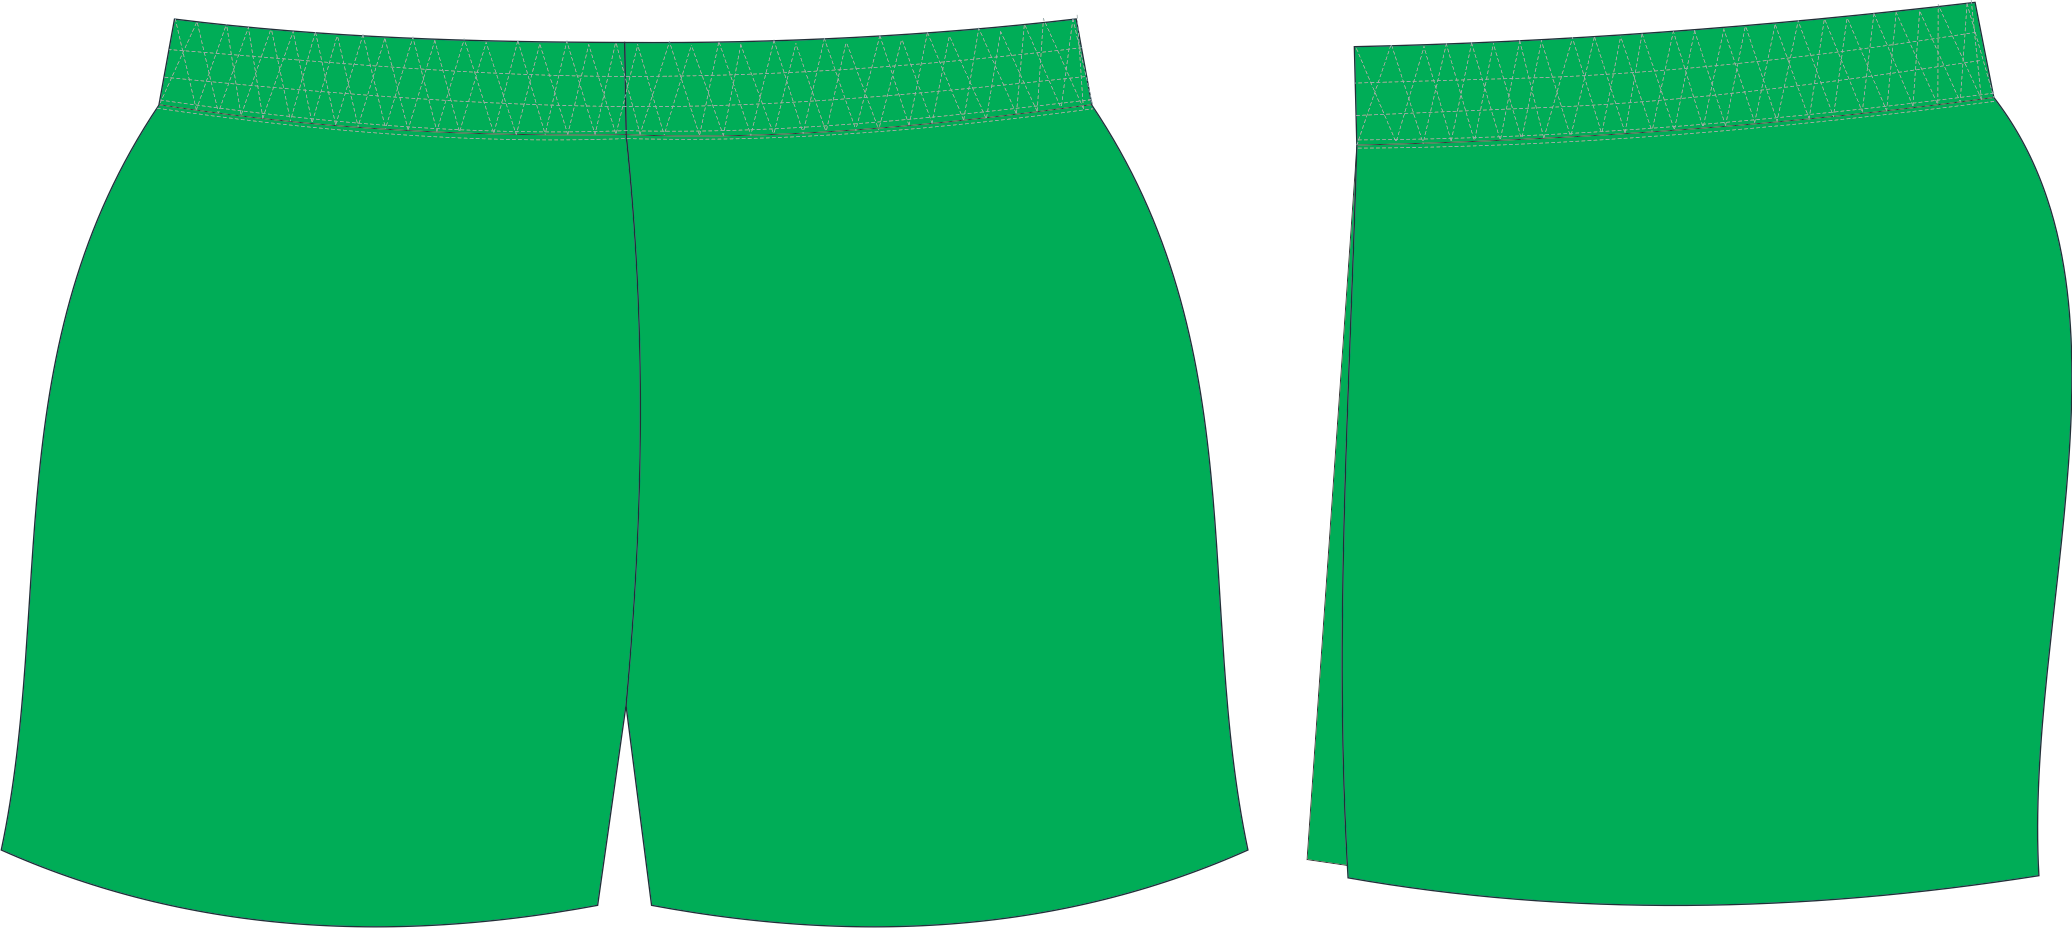 S206XSHT Green.png